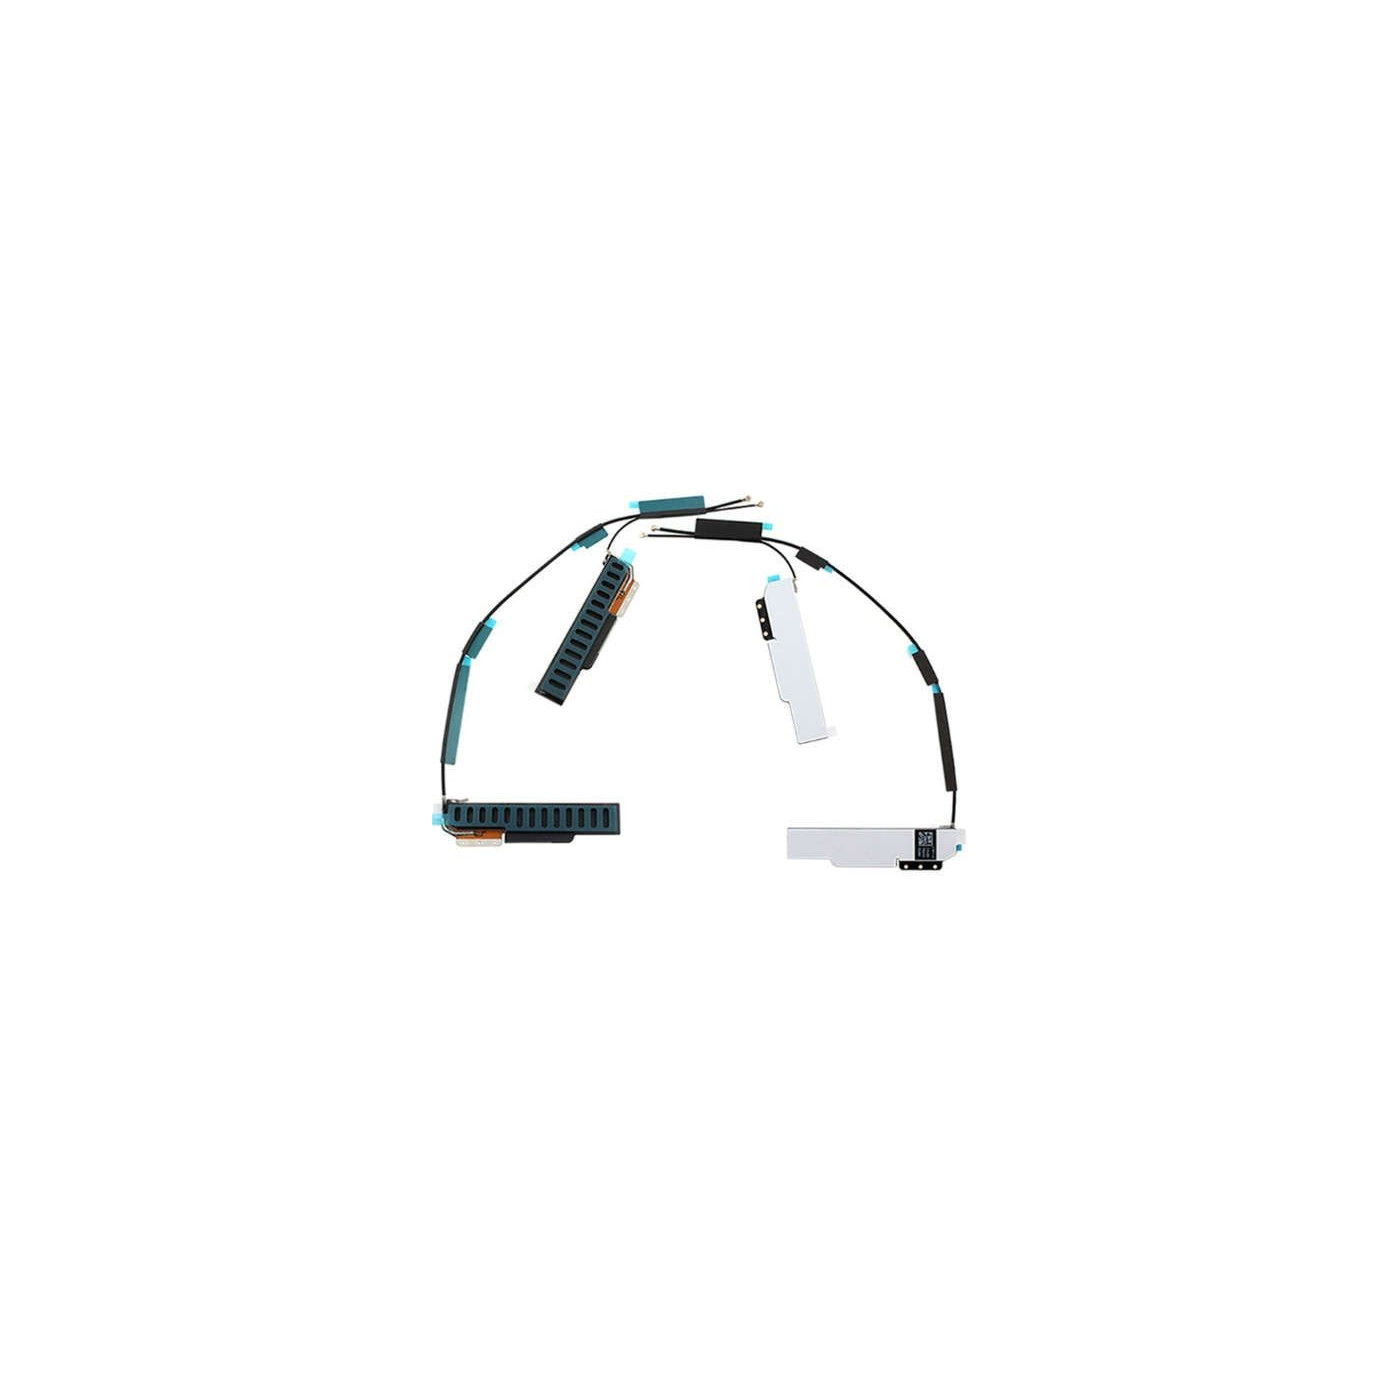 GPS-Antenne wifi Apple Ipad Air 2 flacher Flex